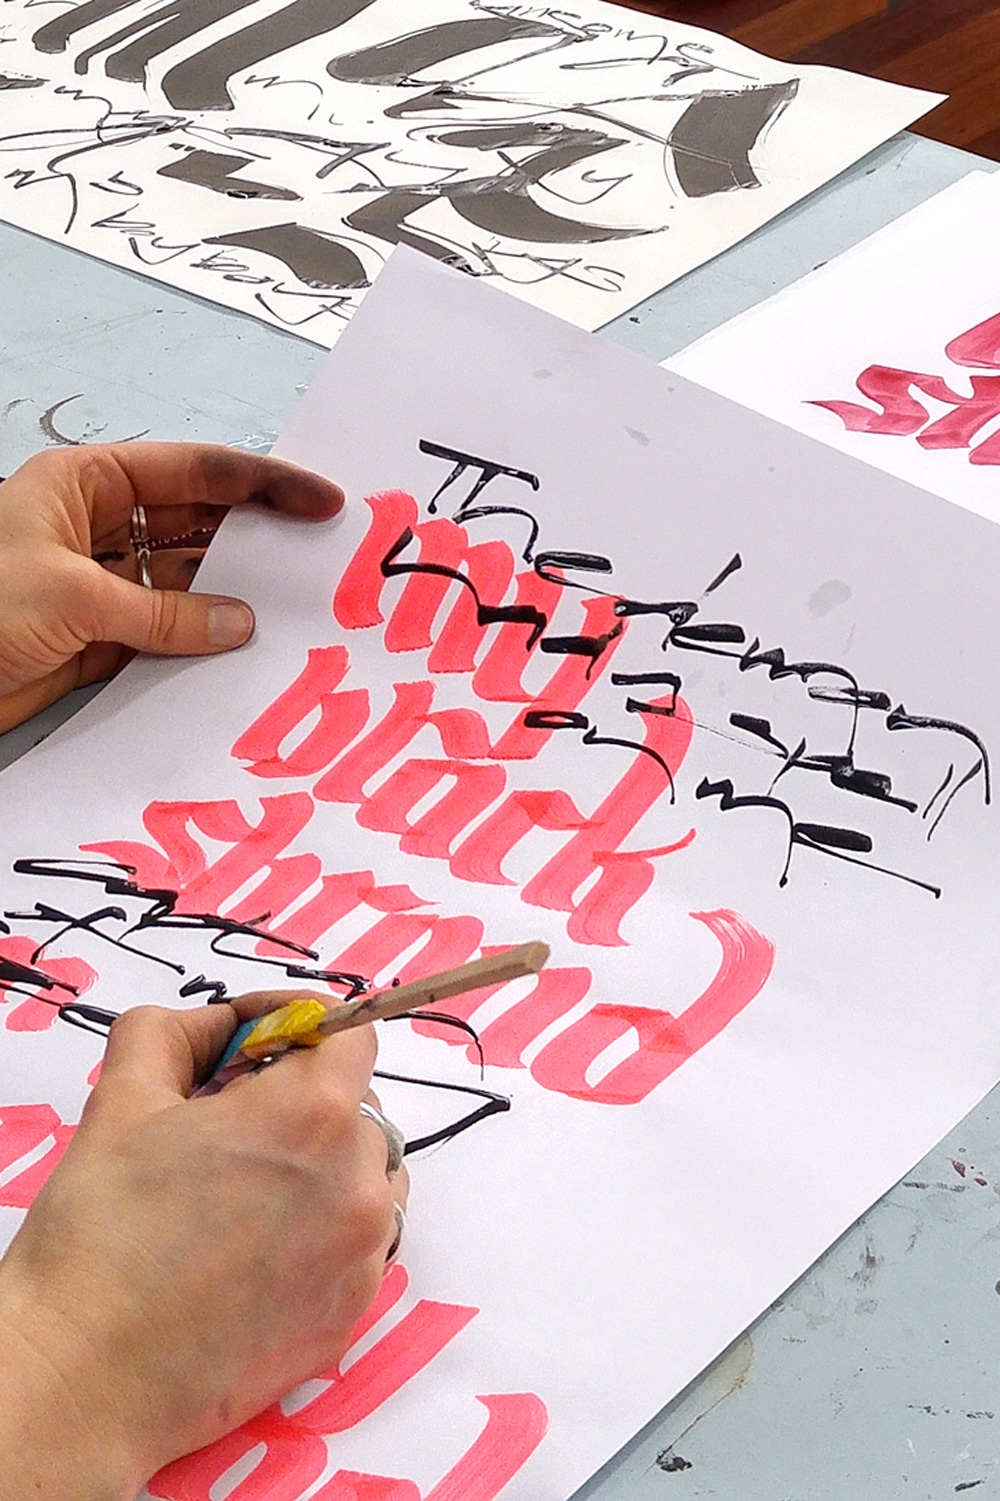 KateHursthouse_Experimental-Calligraphy-Workshop-7.jpg